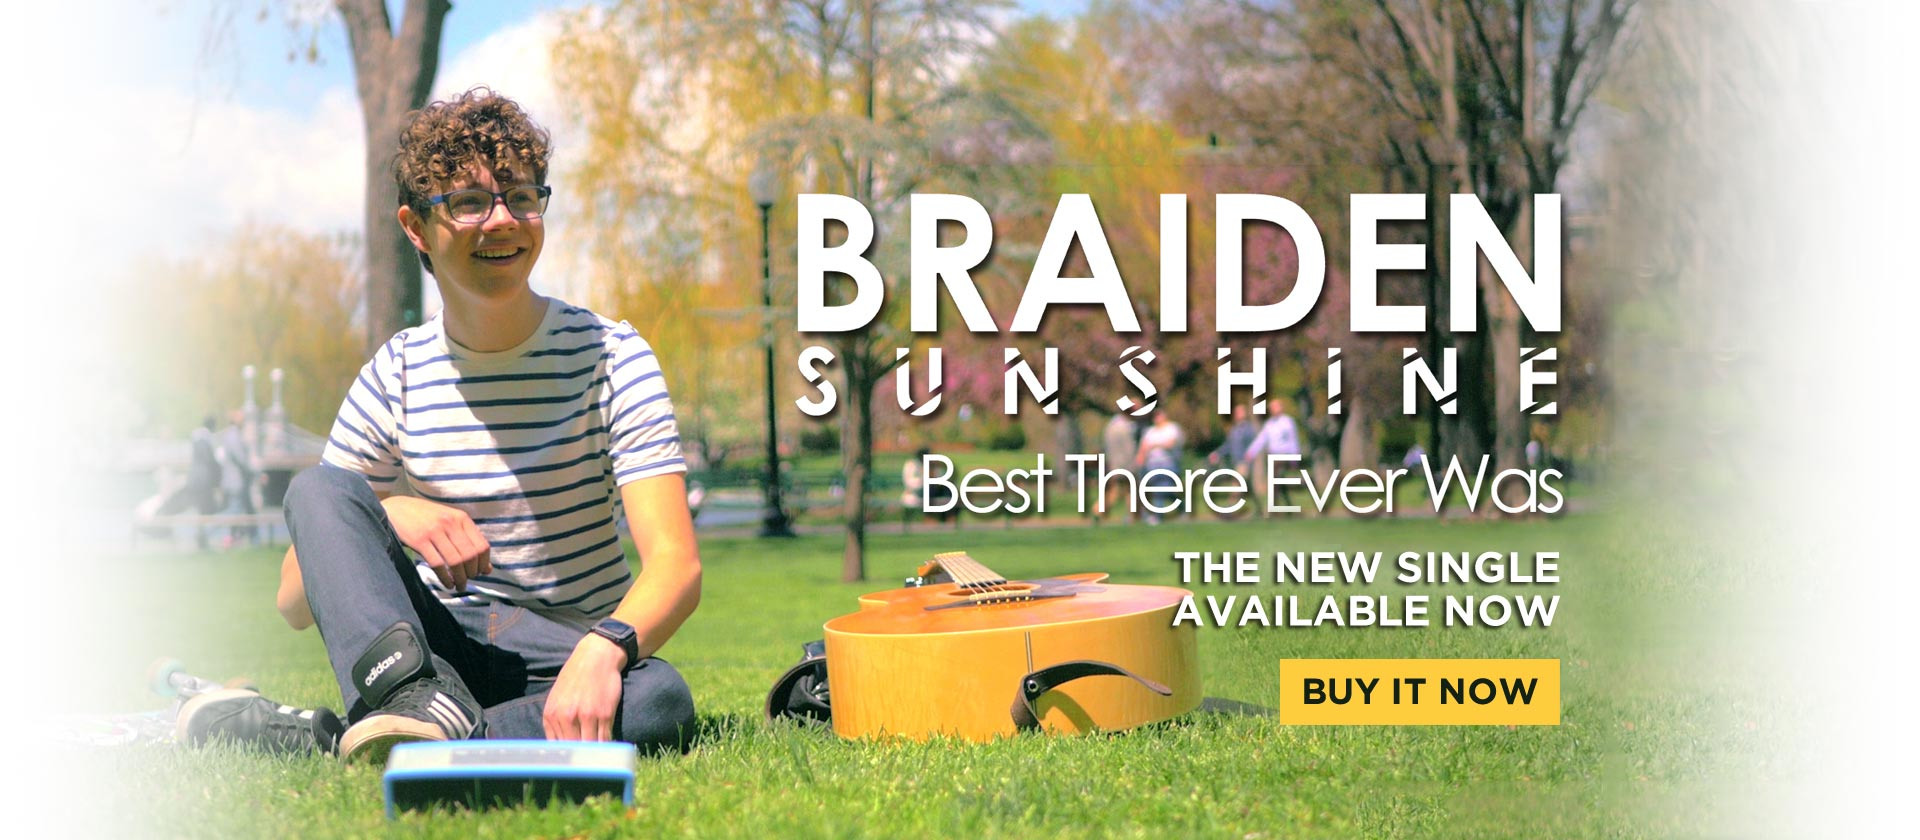 braidensunshine_newmusicvideo_billboard2.jpg